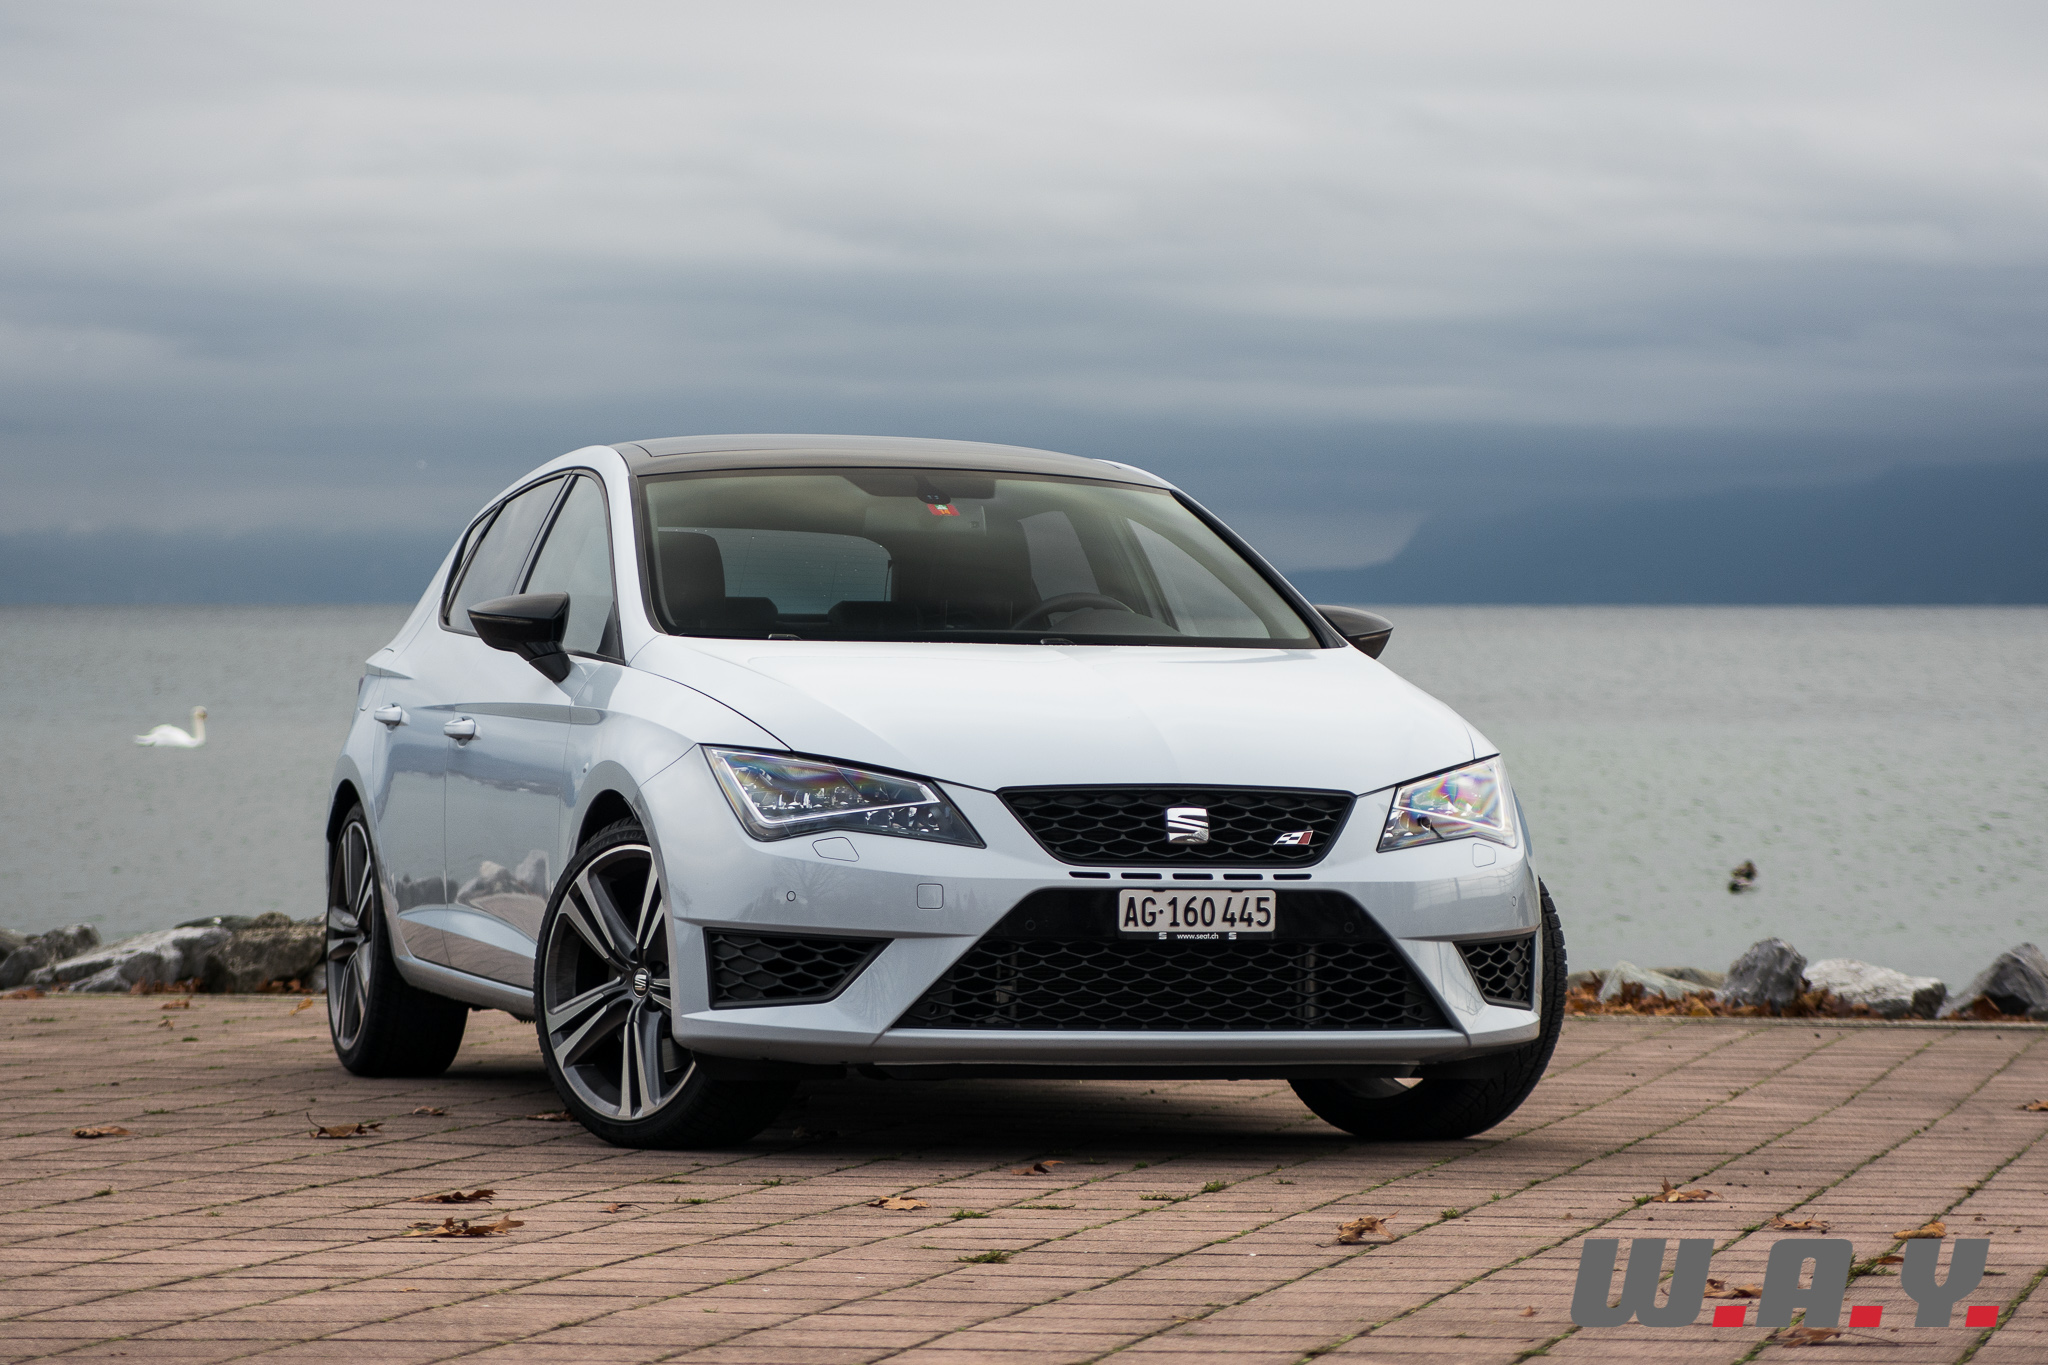 essai seat leon cupra 280 la formidable perturbatrice wheels and. Black Bedroom Furniture Sets. Home Design Ideas